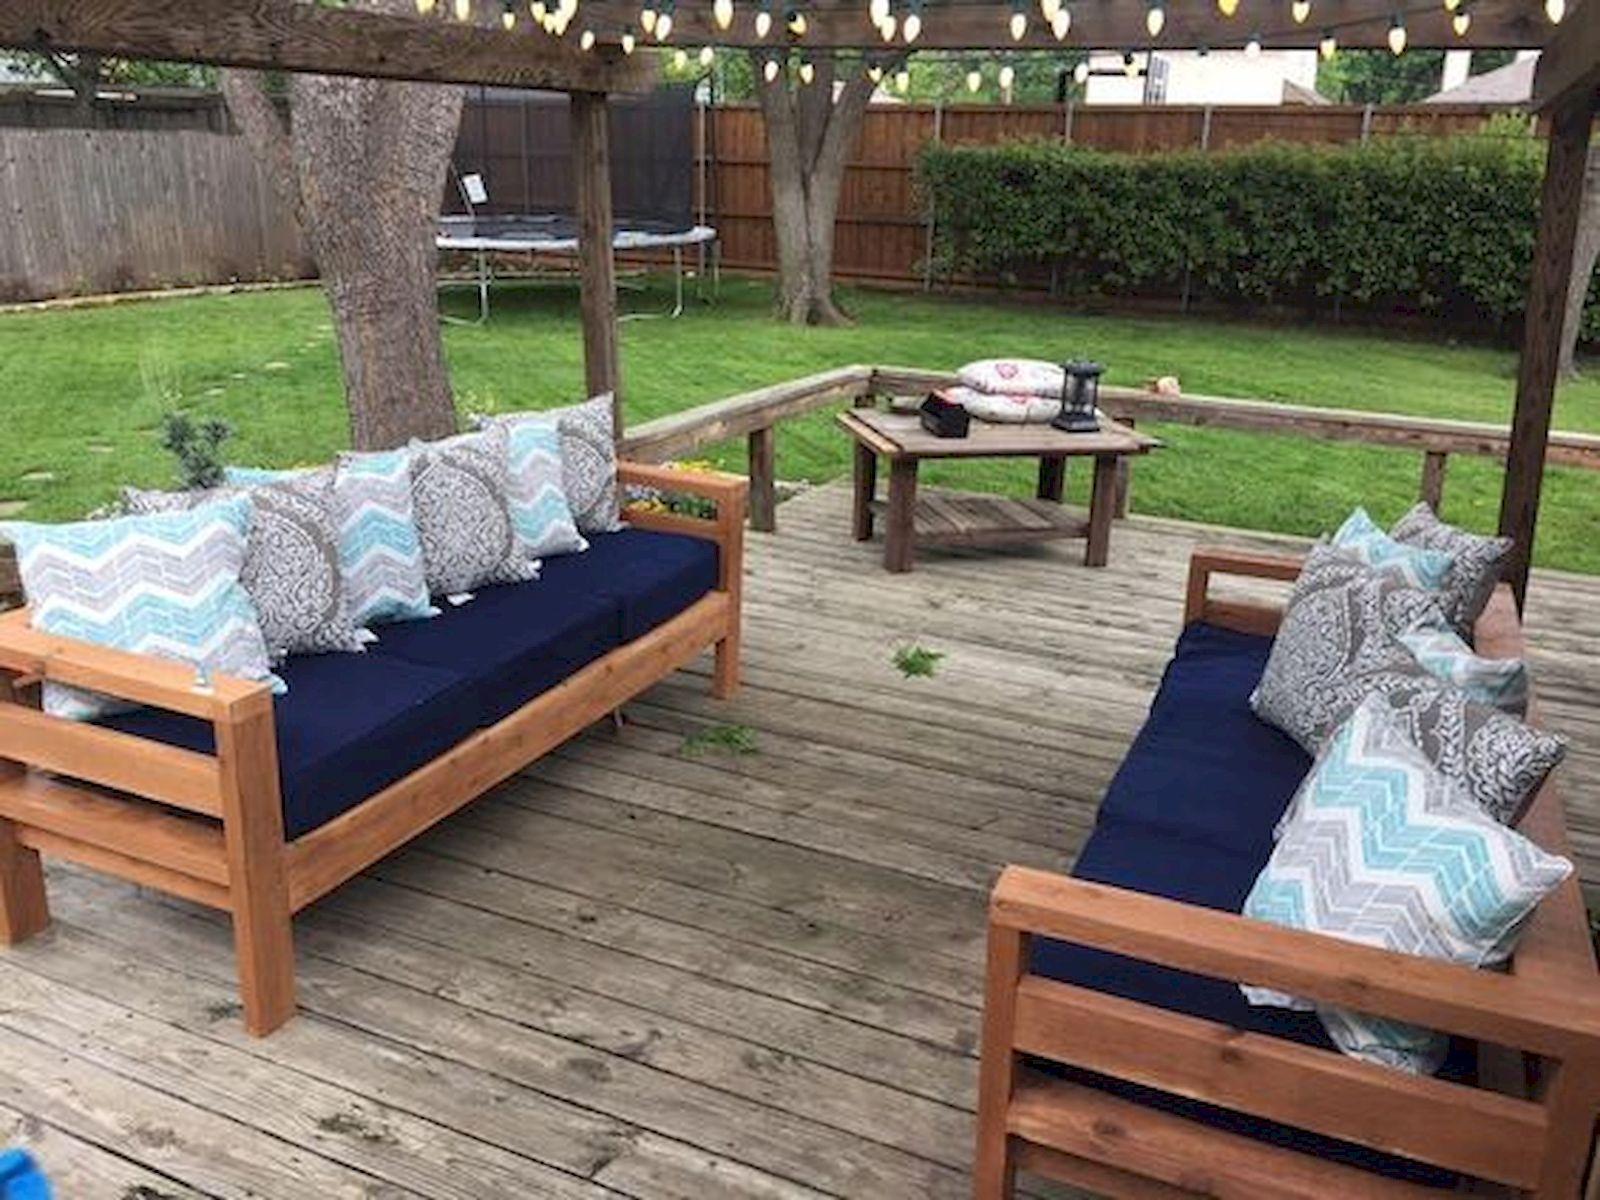 33 Best Diy Patio Furniture Ideas 1 33decor